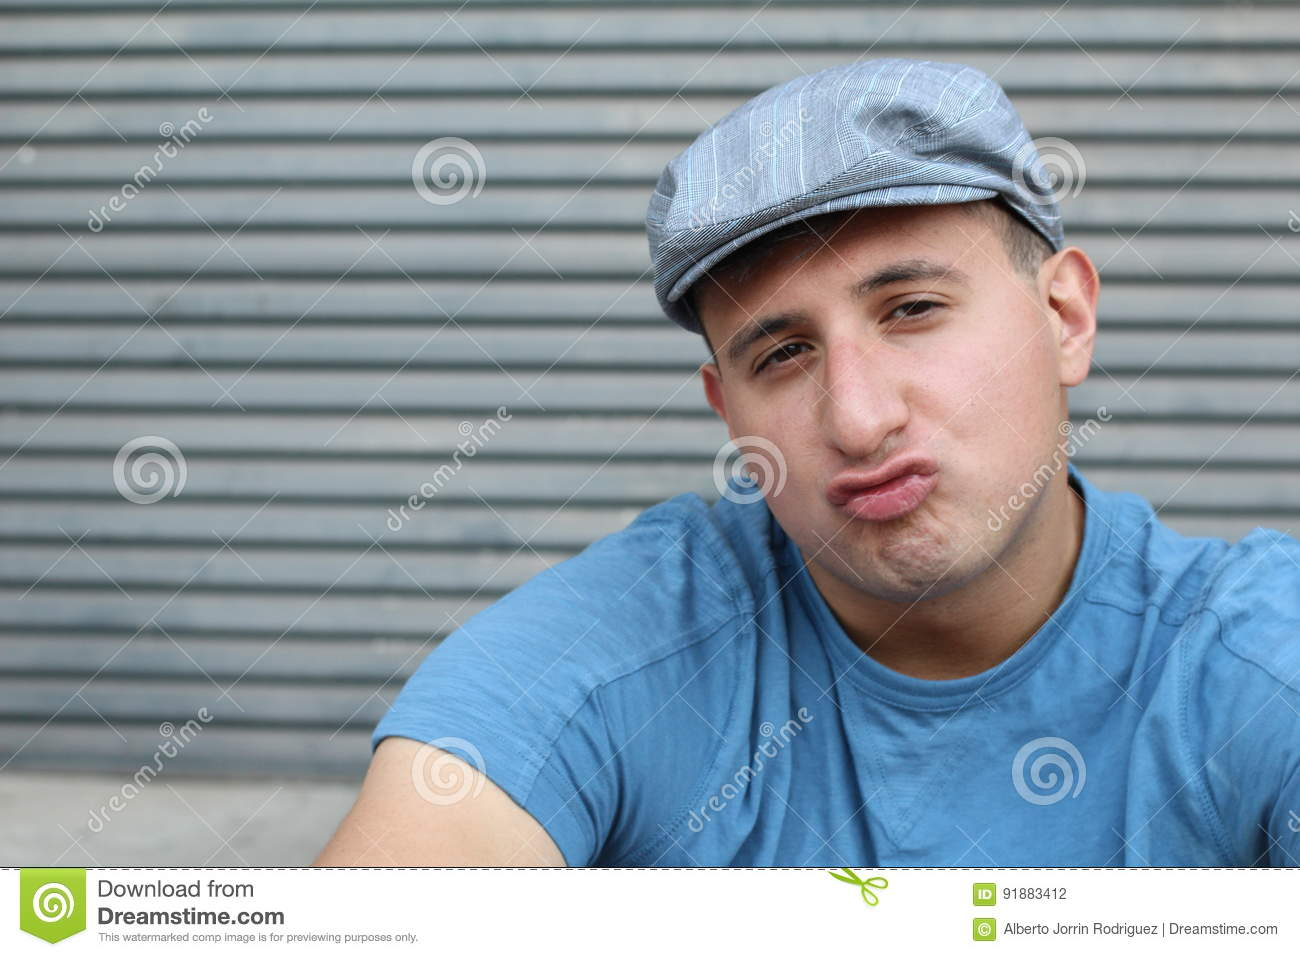 Hilarious young guy with pursed lips or duck lips expression.